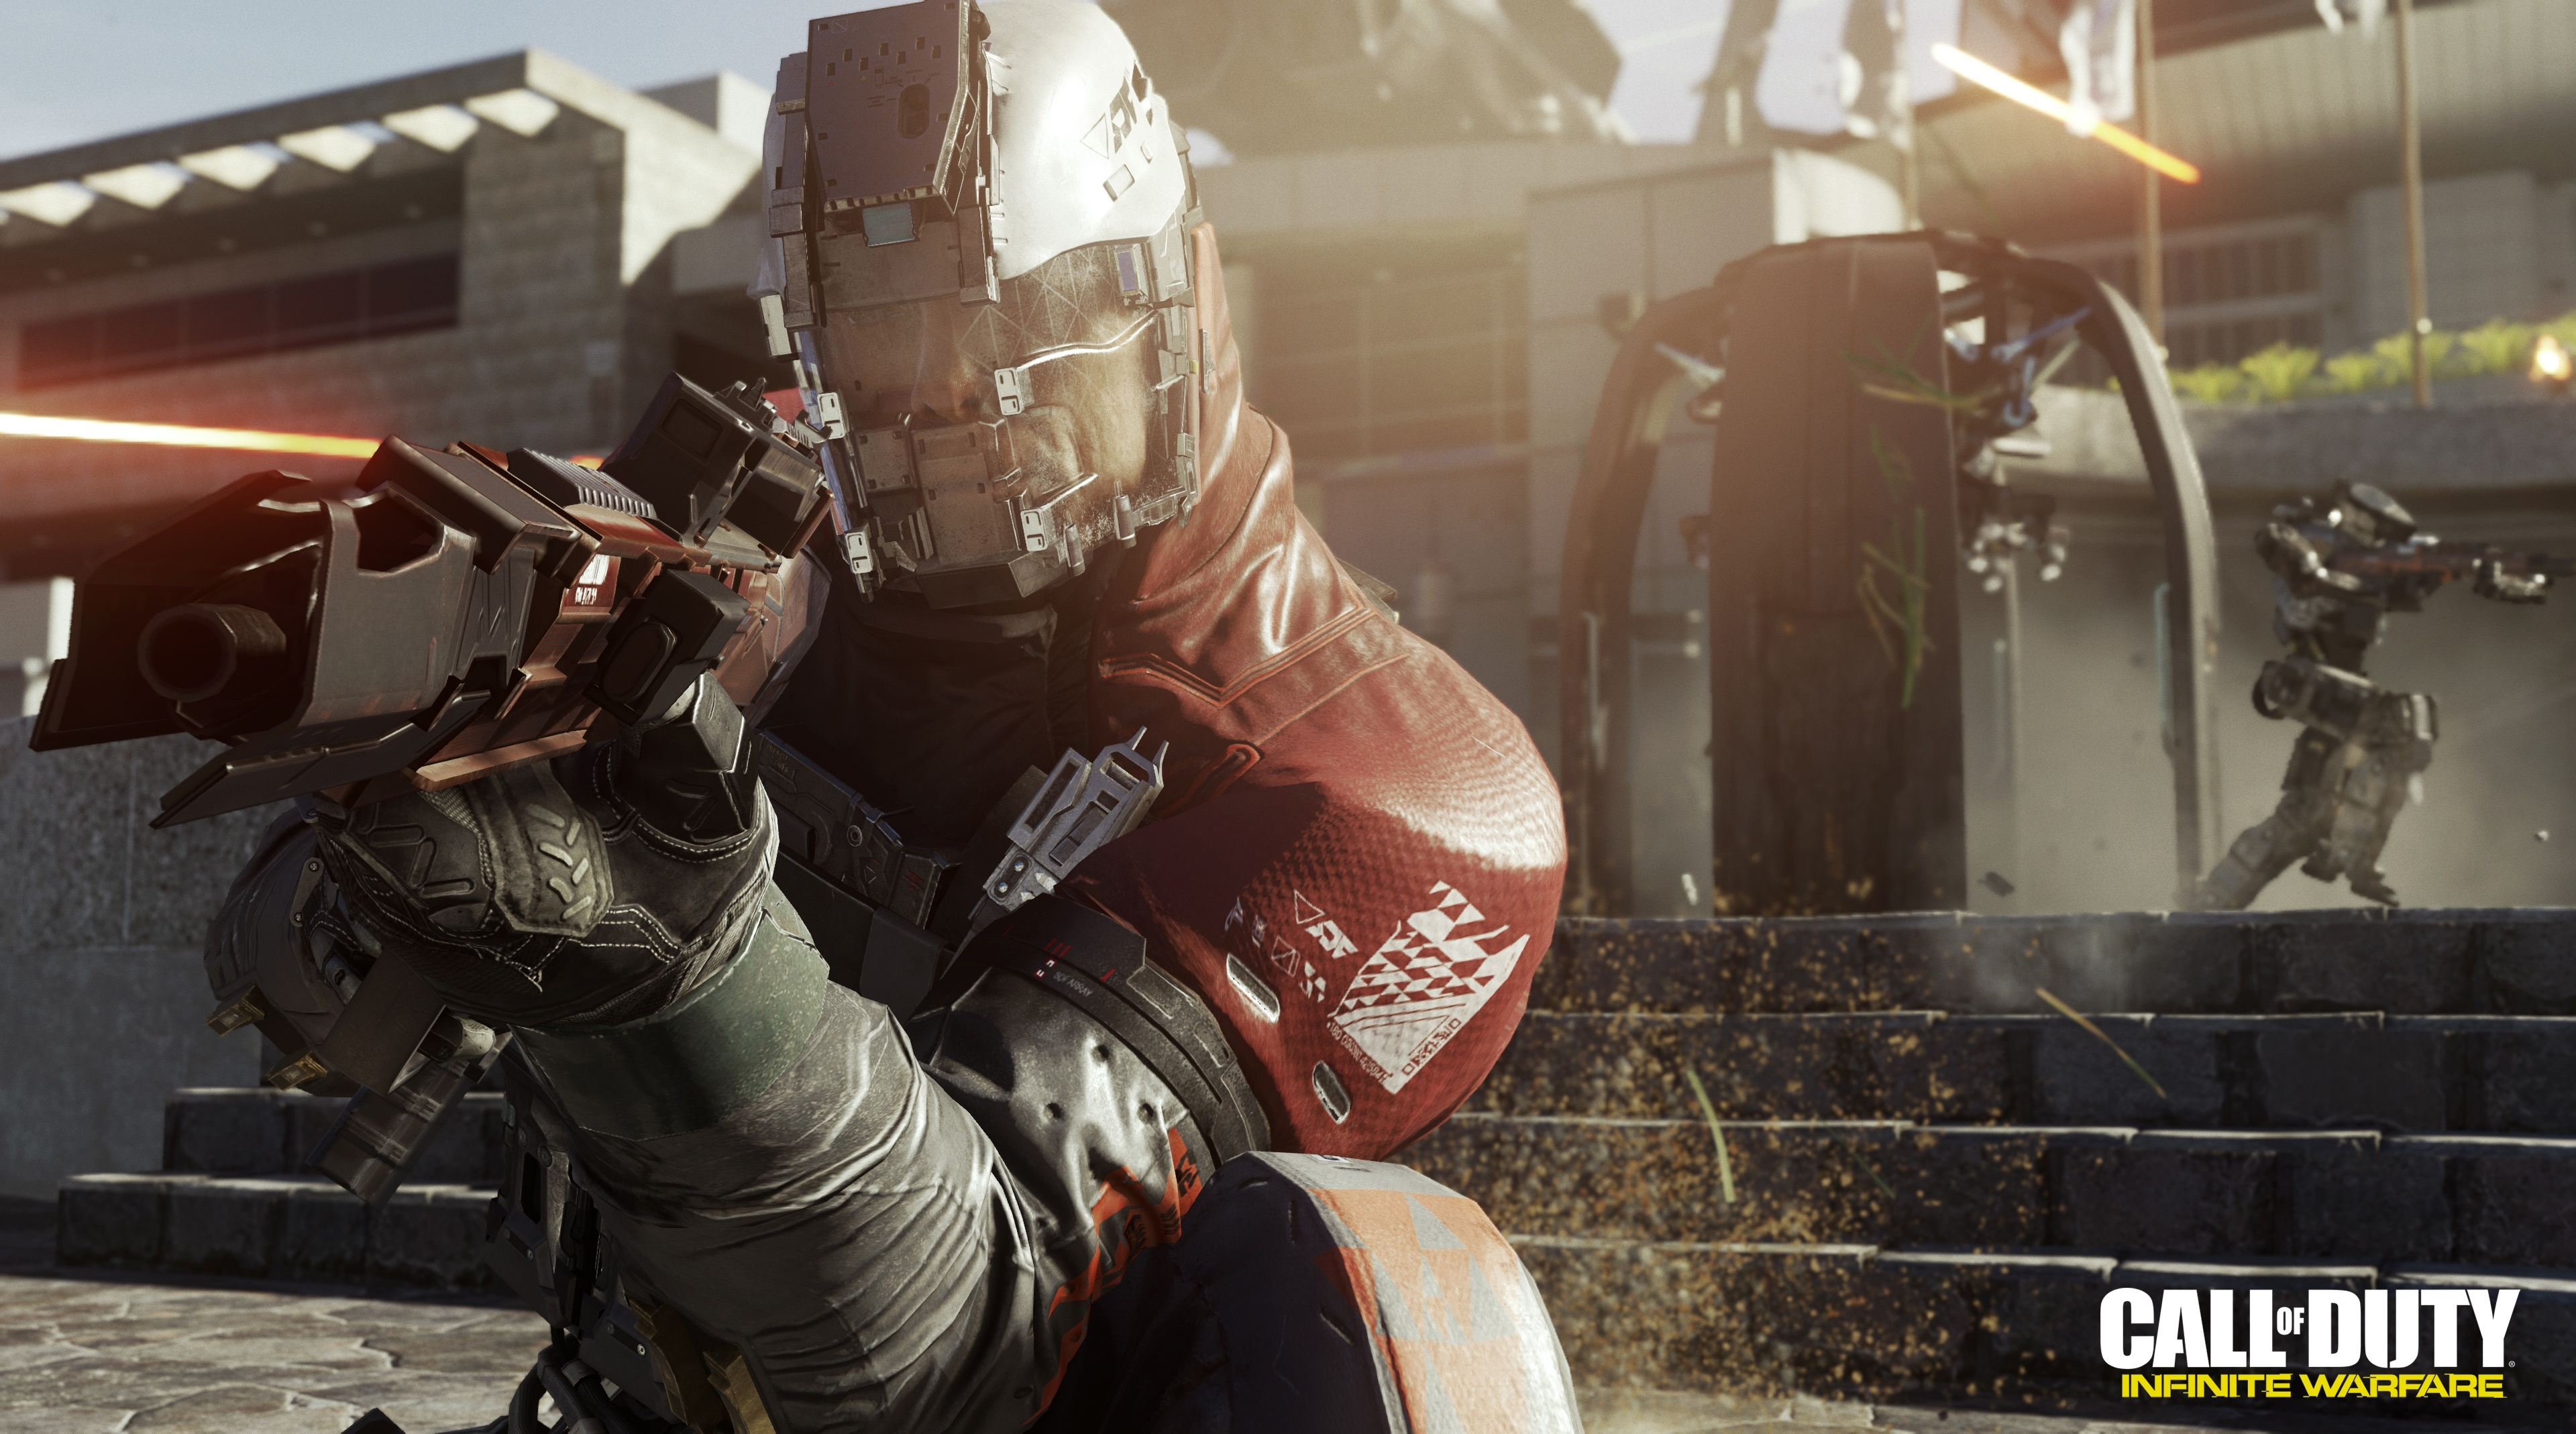 Call Of Duty Infinite Warfare Hd Games 4k Wallpapers Images